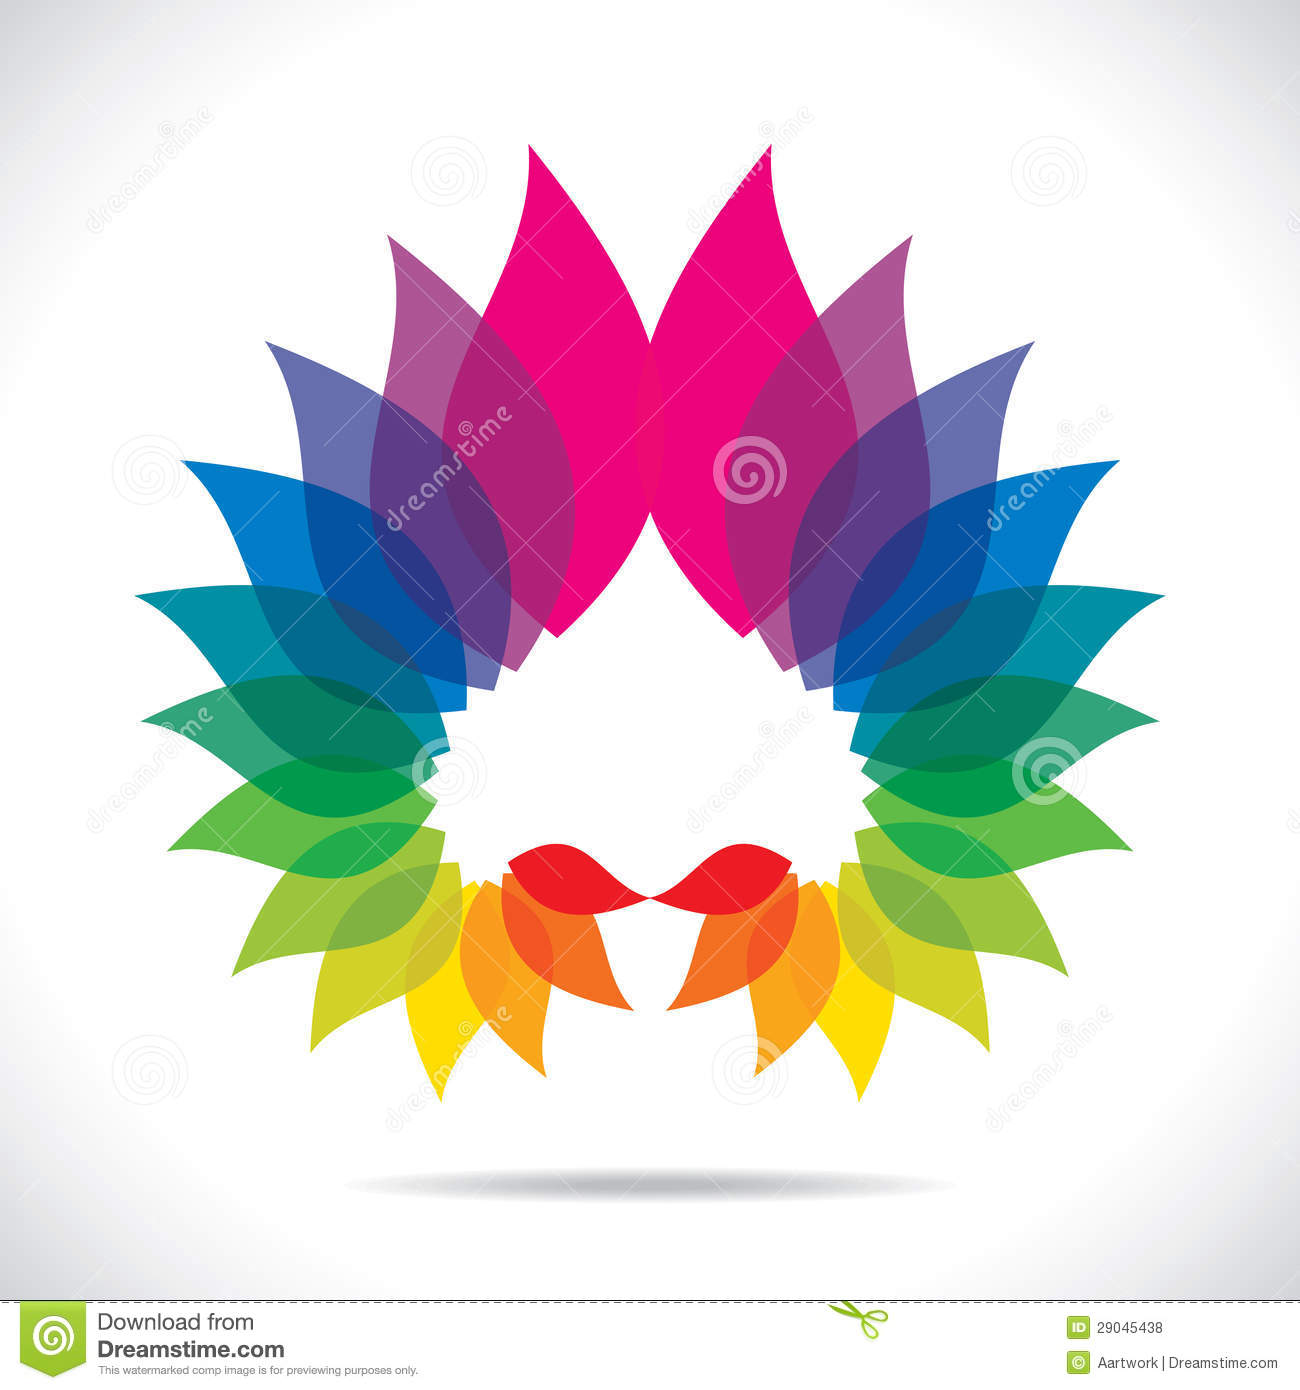 Colorful Lead Design Icon Royalty Free Stock Photos   Image  29045438